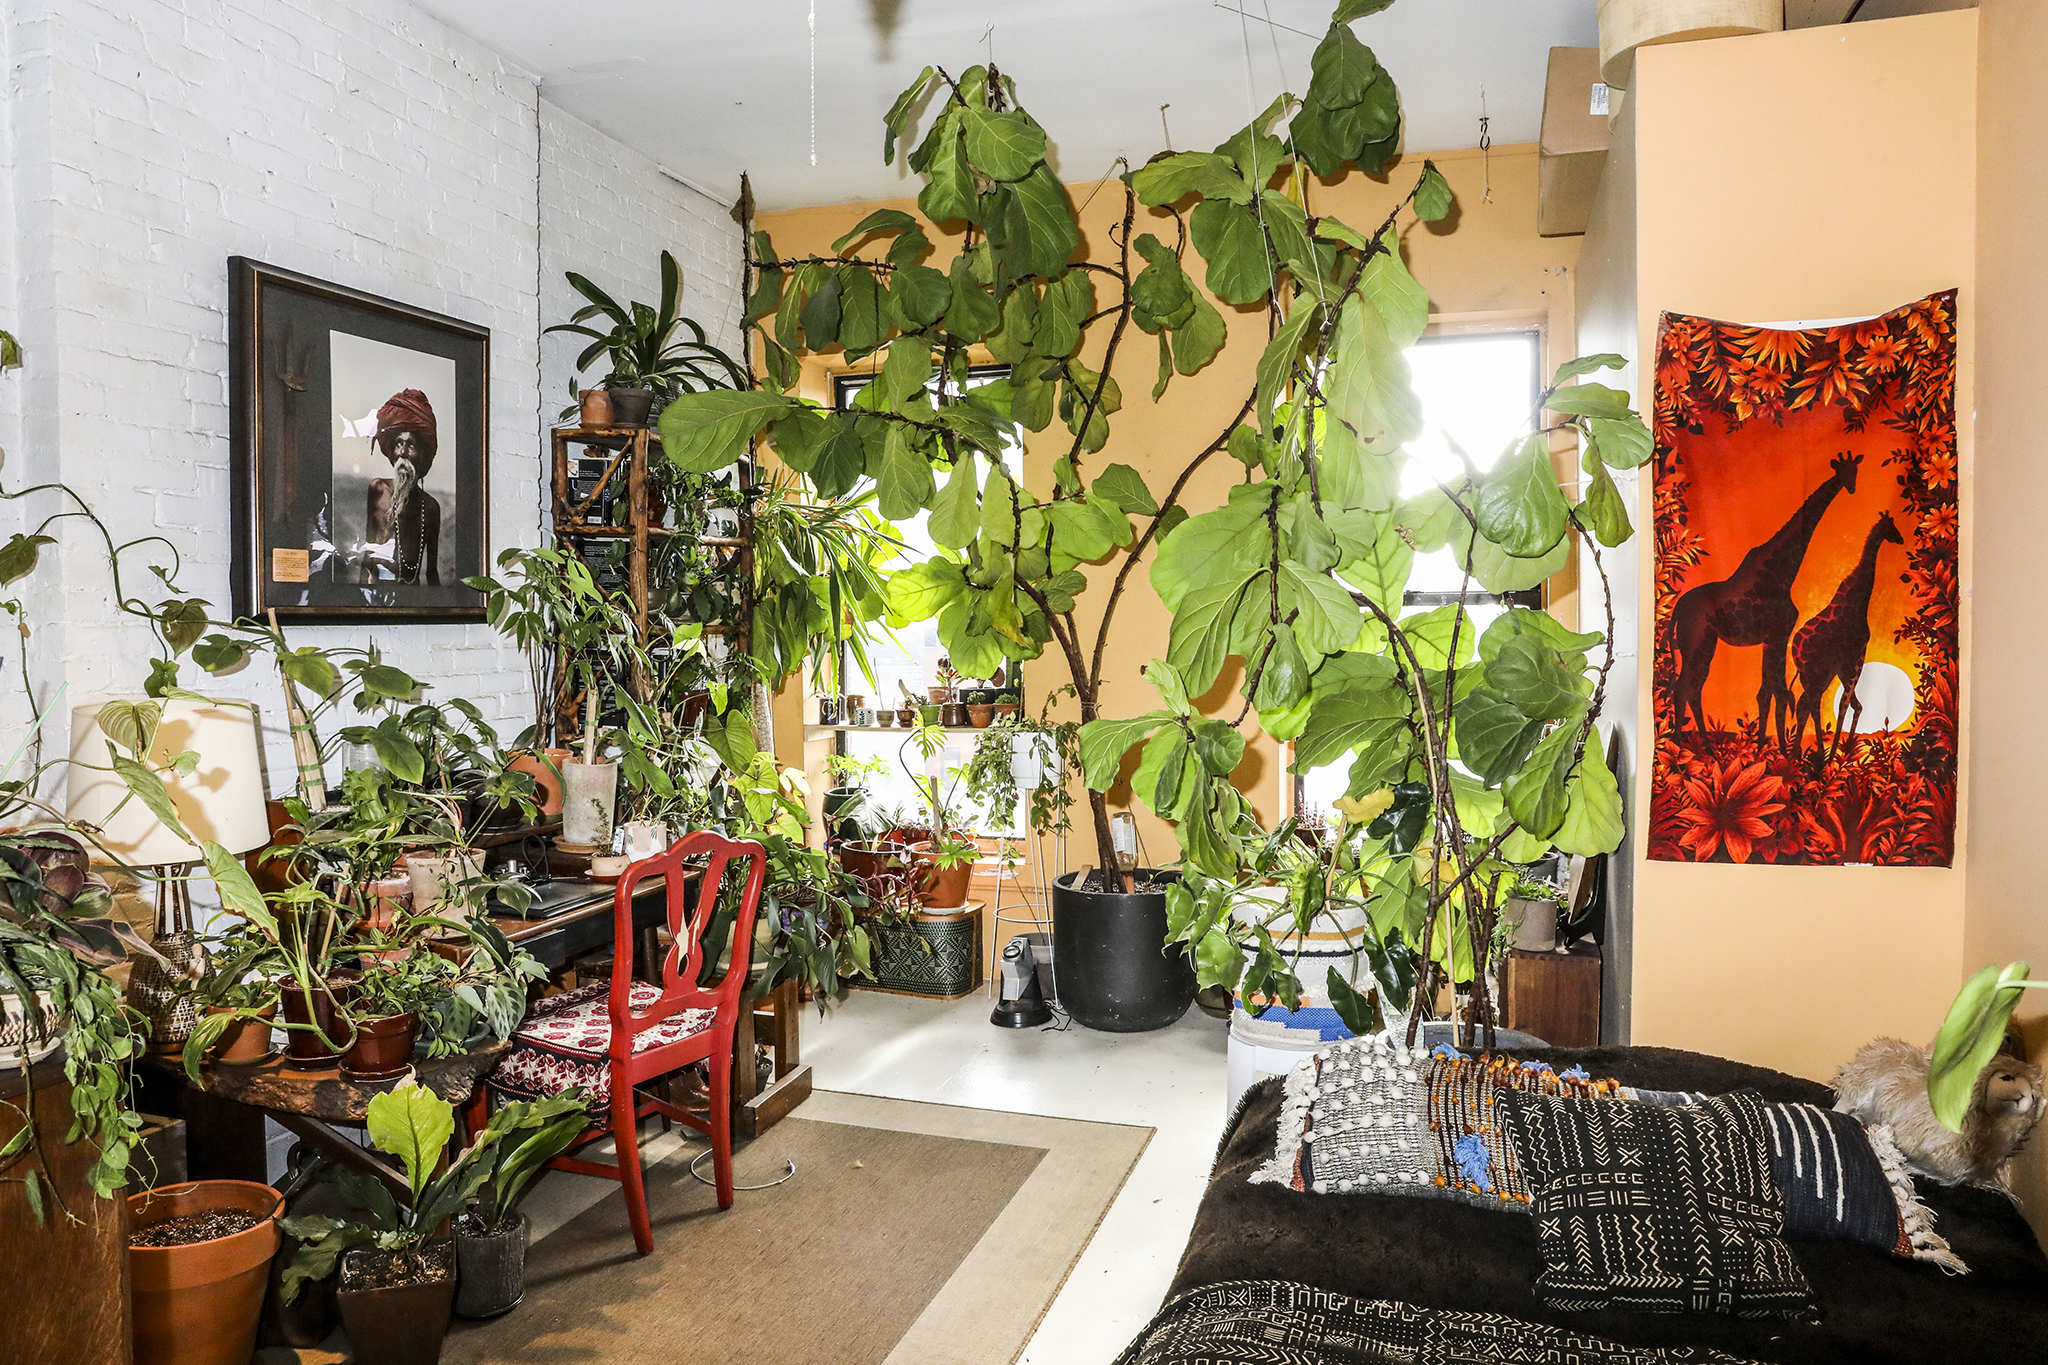 Check these awesome apartments of New York City collectors